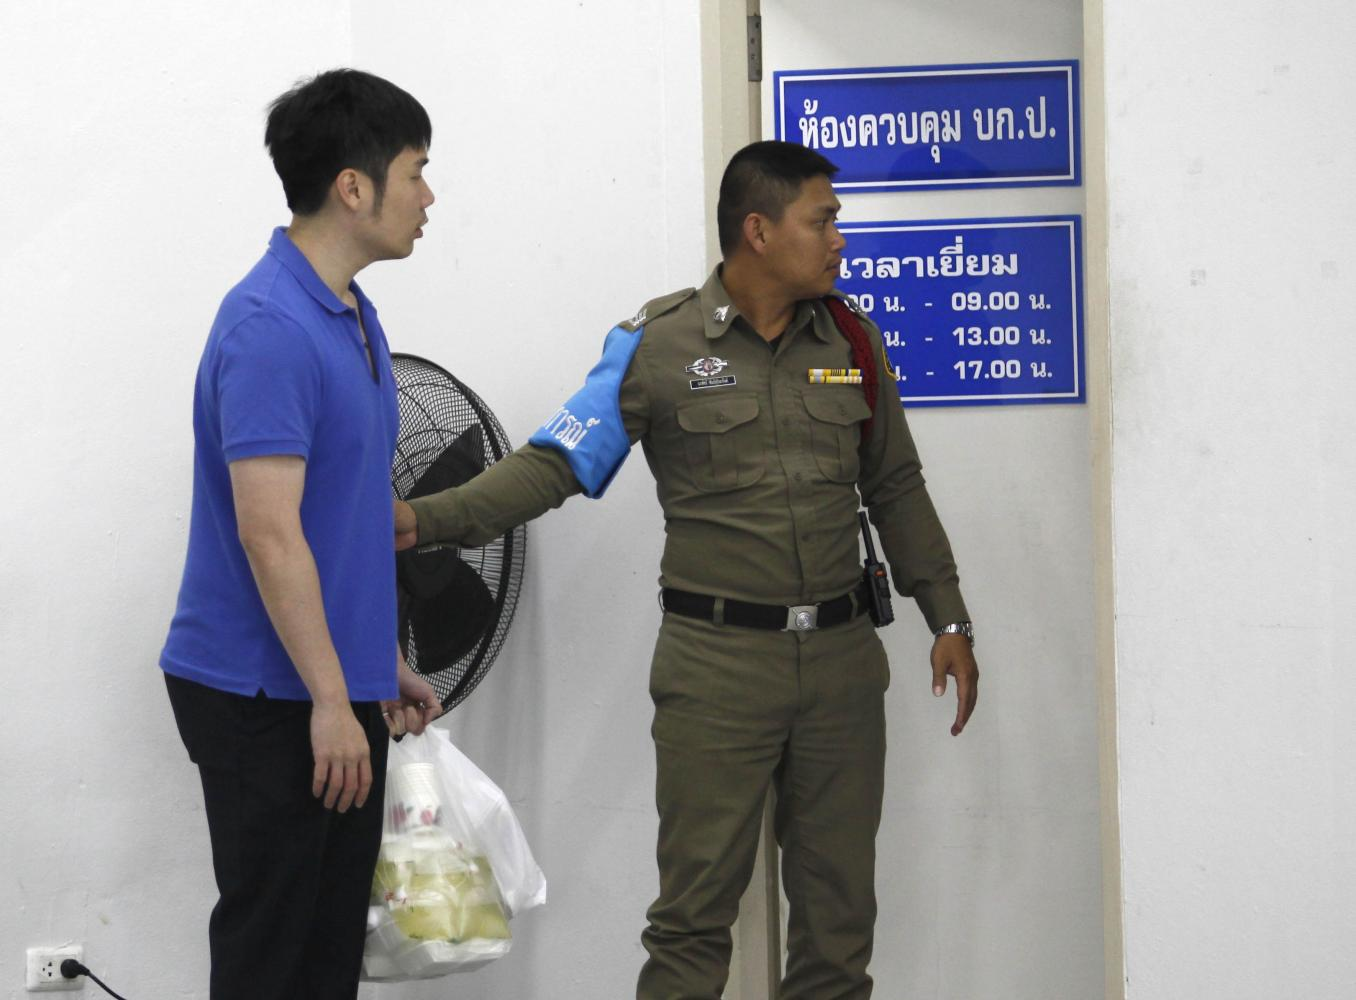 A son of former deputy commerce minister Pol Lt Col Banyin Tangpakorn waits for permission to visit his father at the Crime Suppression Division HQ in Bangkok on Monday. (Photo by Pattarapong Chatpattarasill)